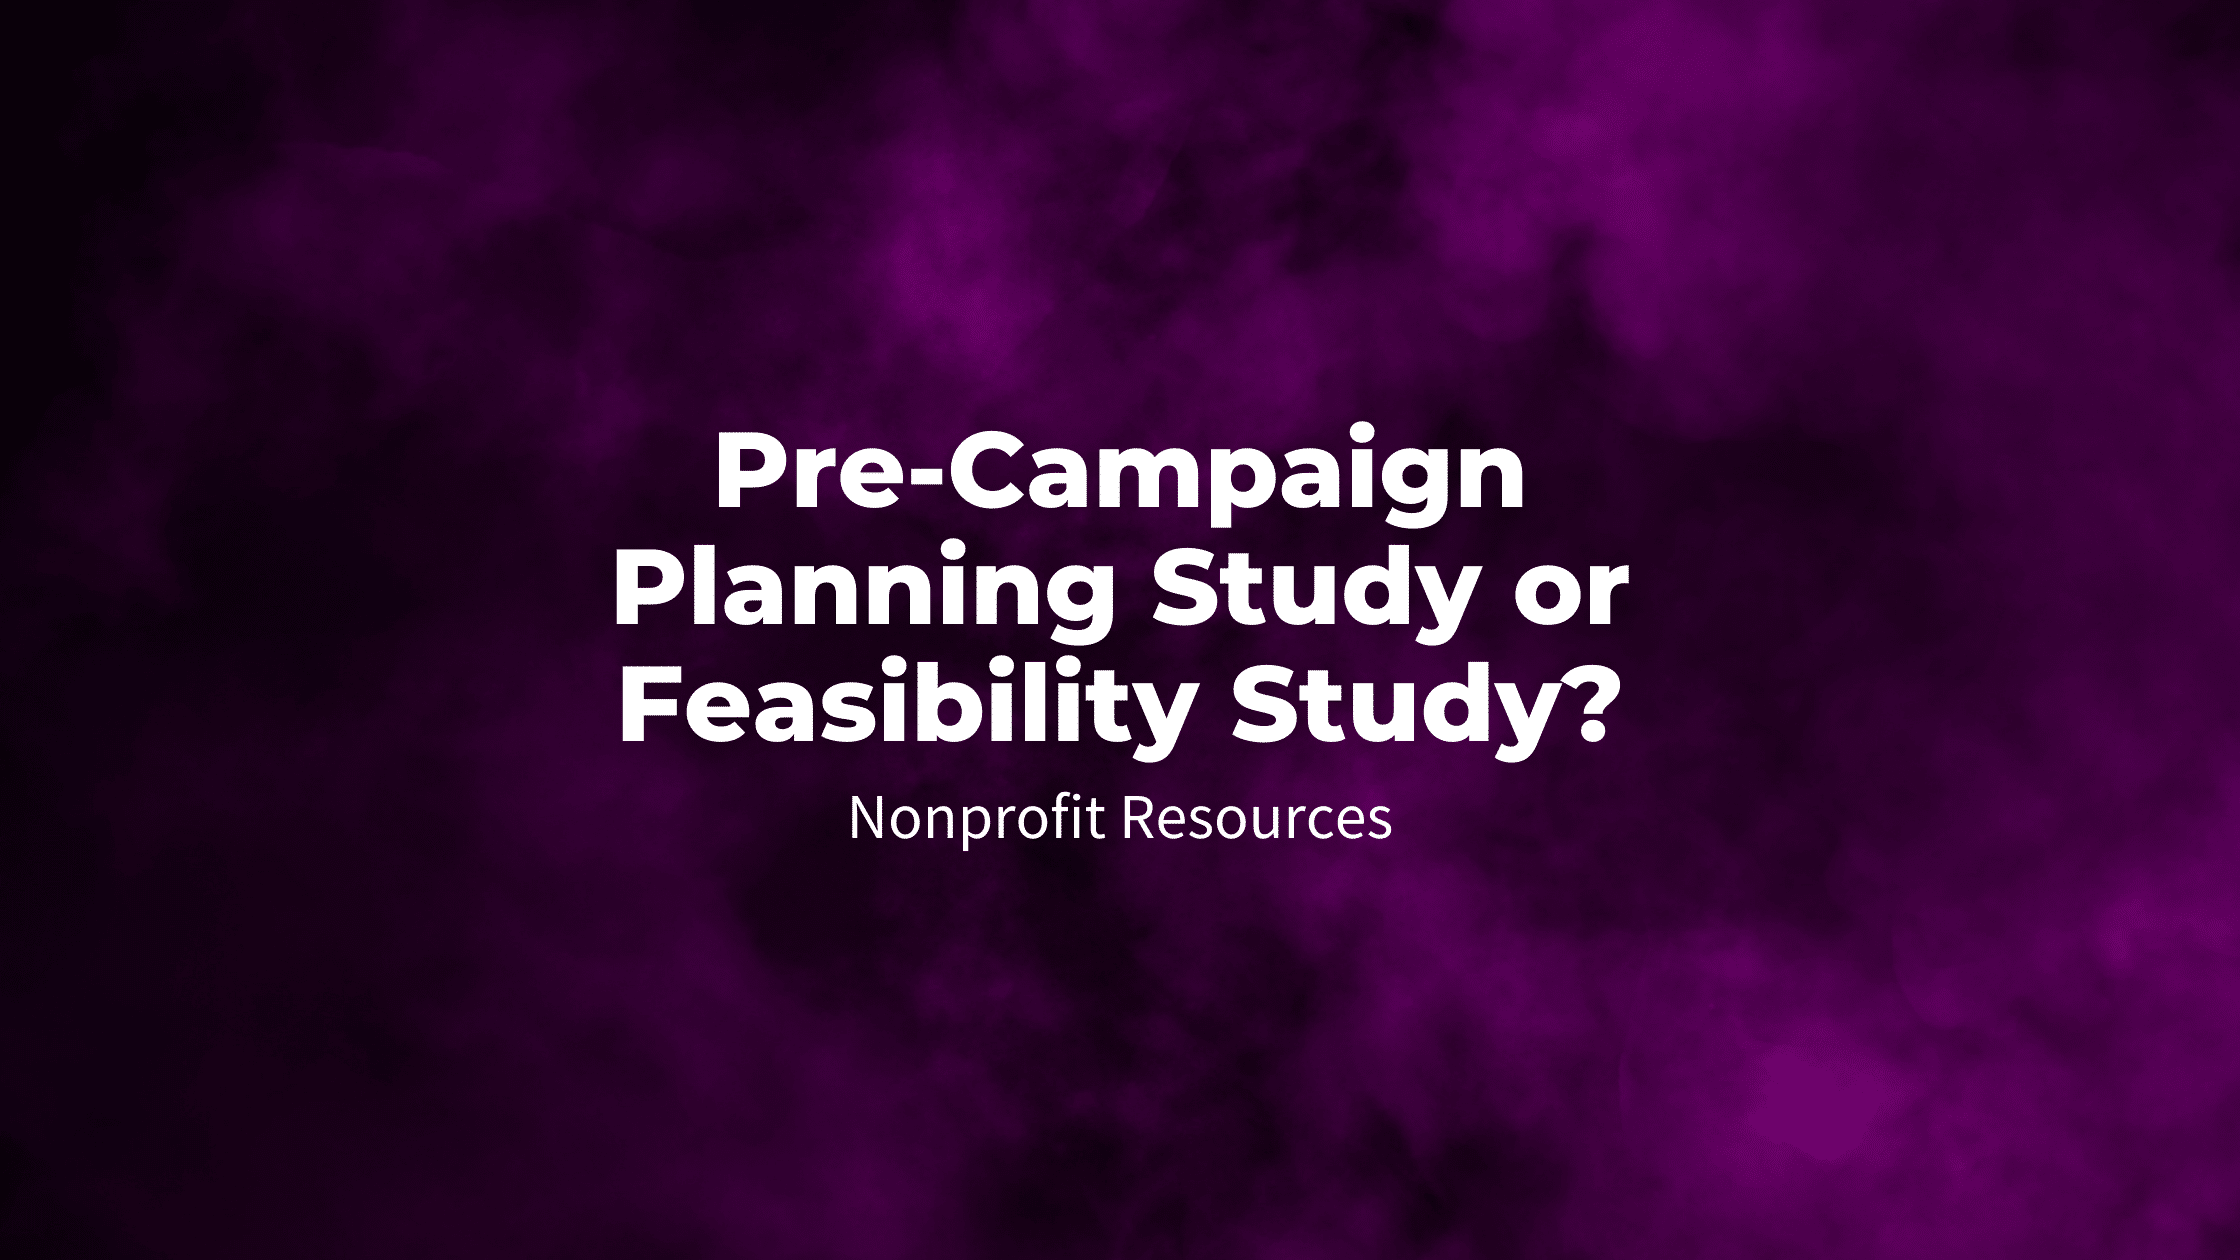 Pre-Campaign Planning Study or Feasibility Study